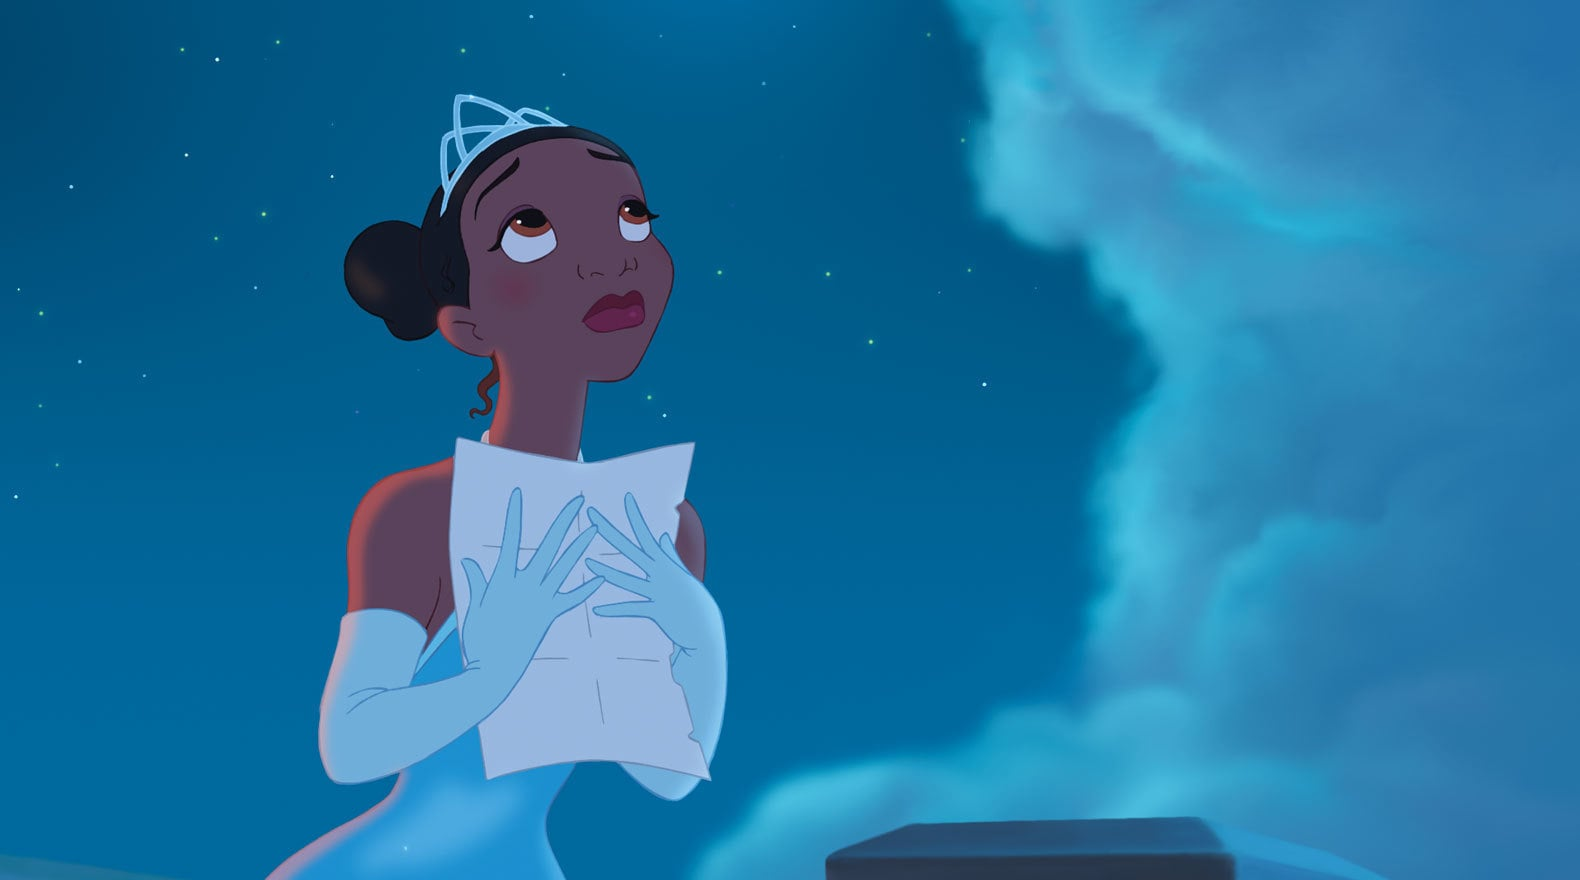 Tiana clutches a letter to her chest